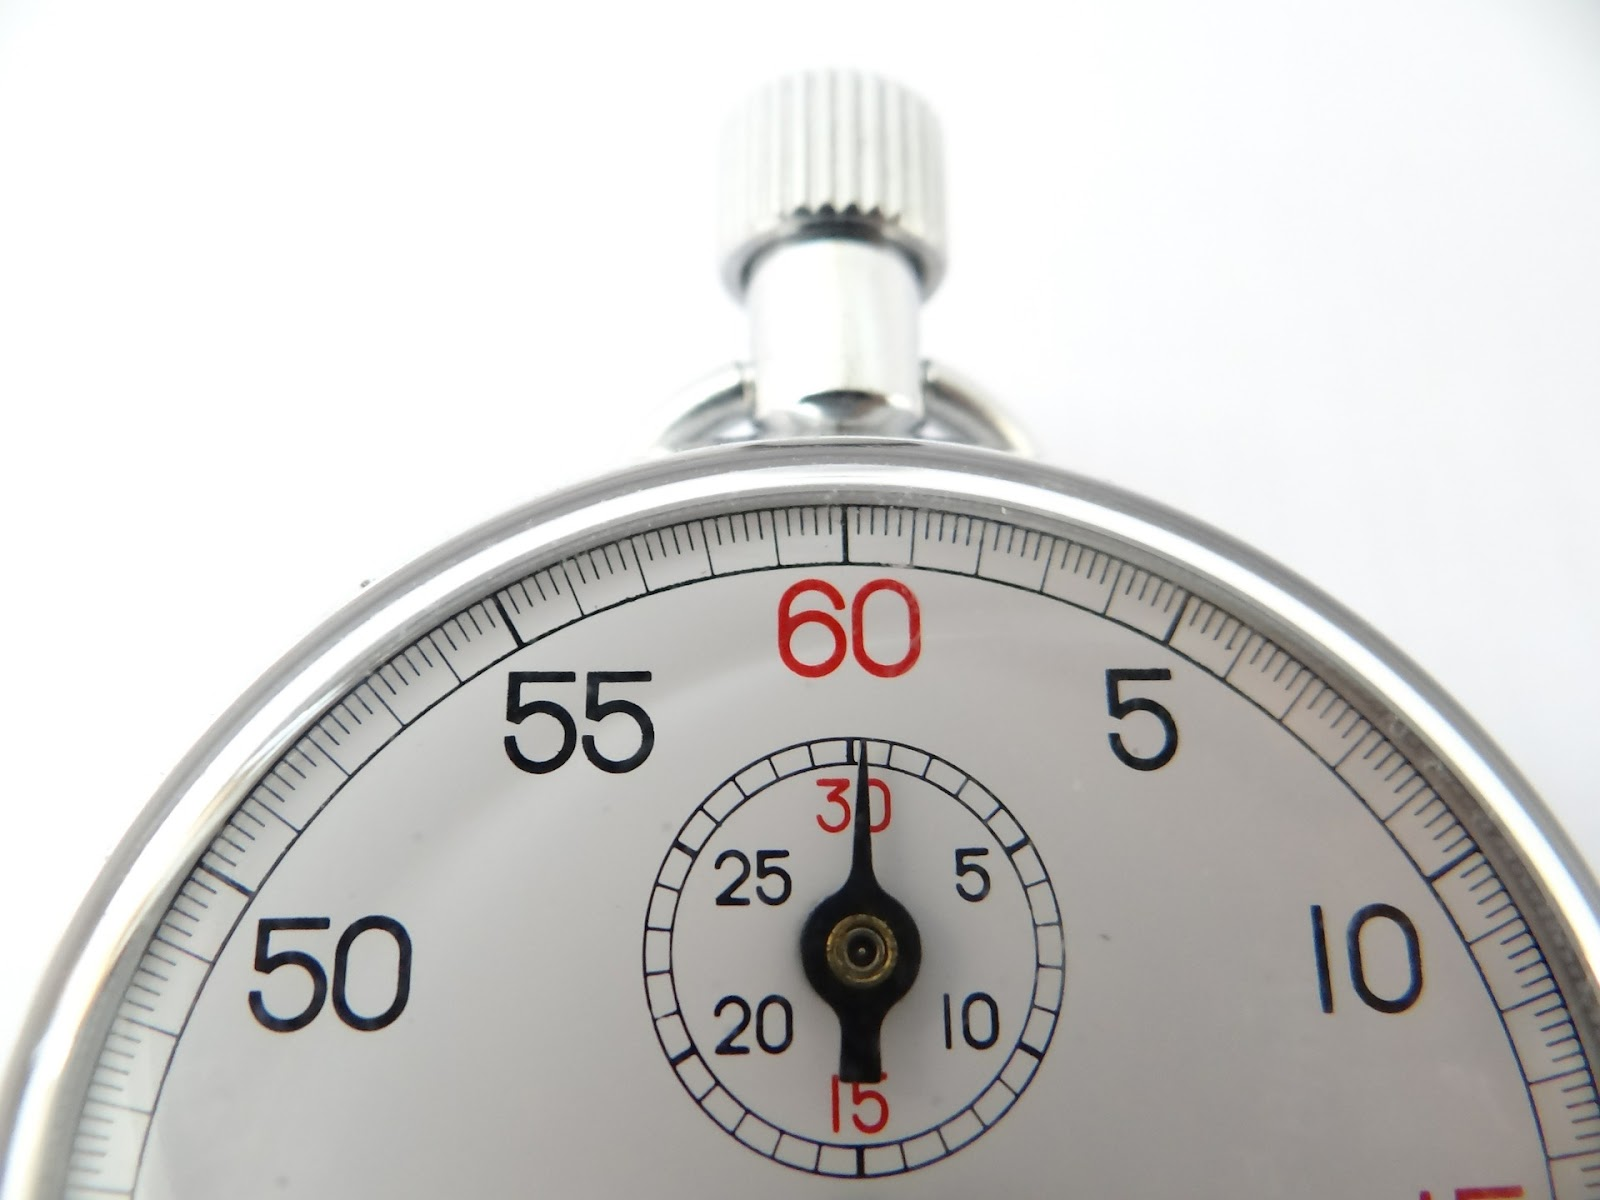 A stop watch shows 60 seconds.